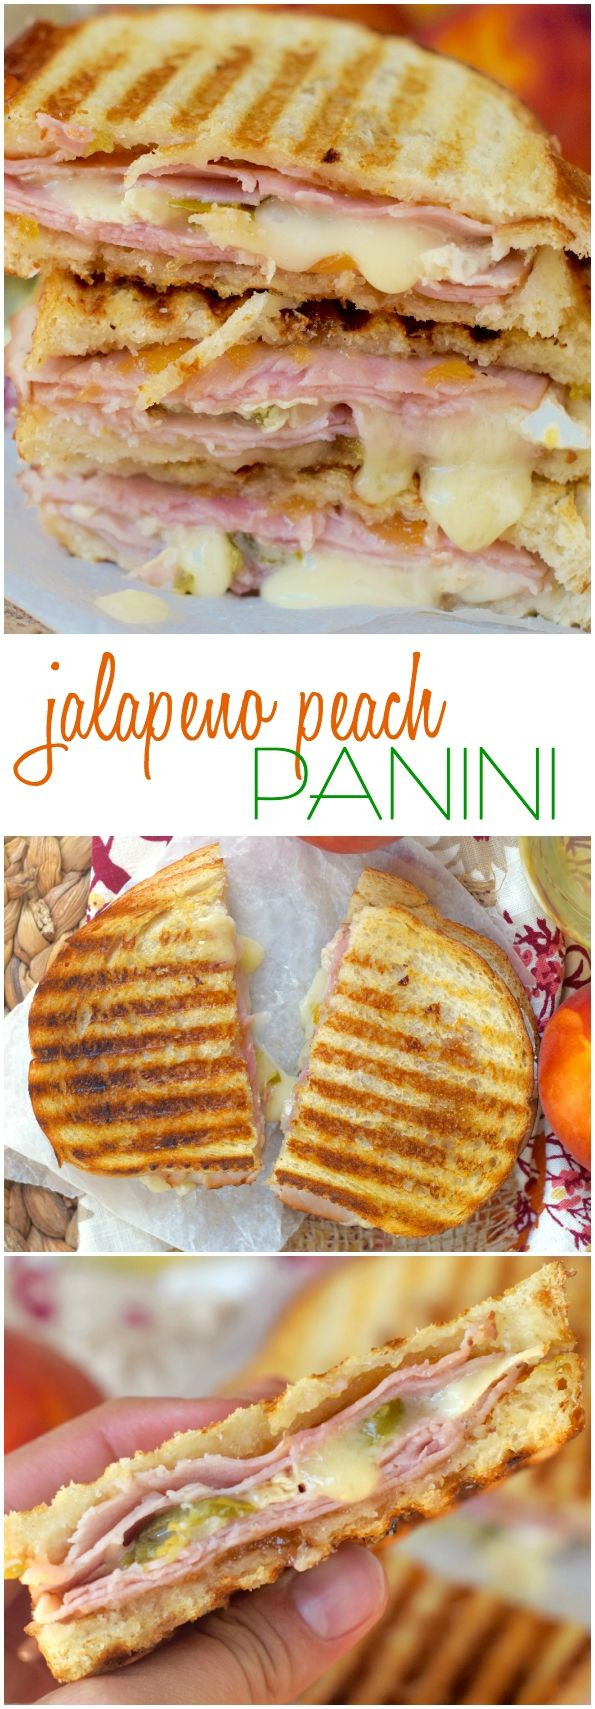 This Jalapeño Peach Panini is a serious combination of amazing flavors! I'm so obsessed with this sandwich I ate it for four meals in a row!